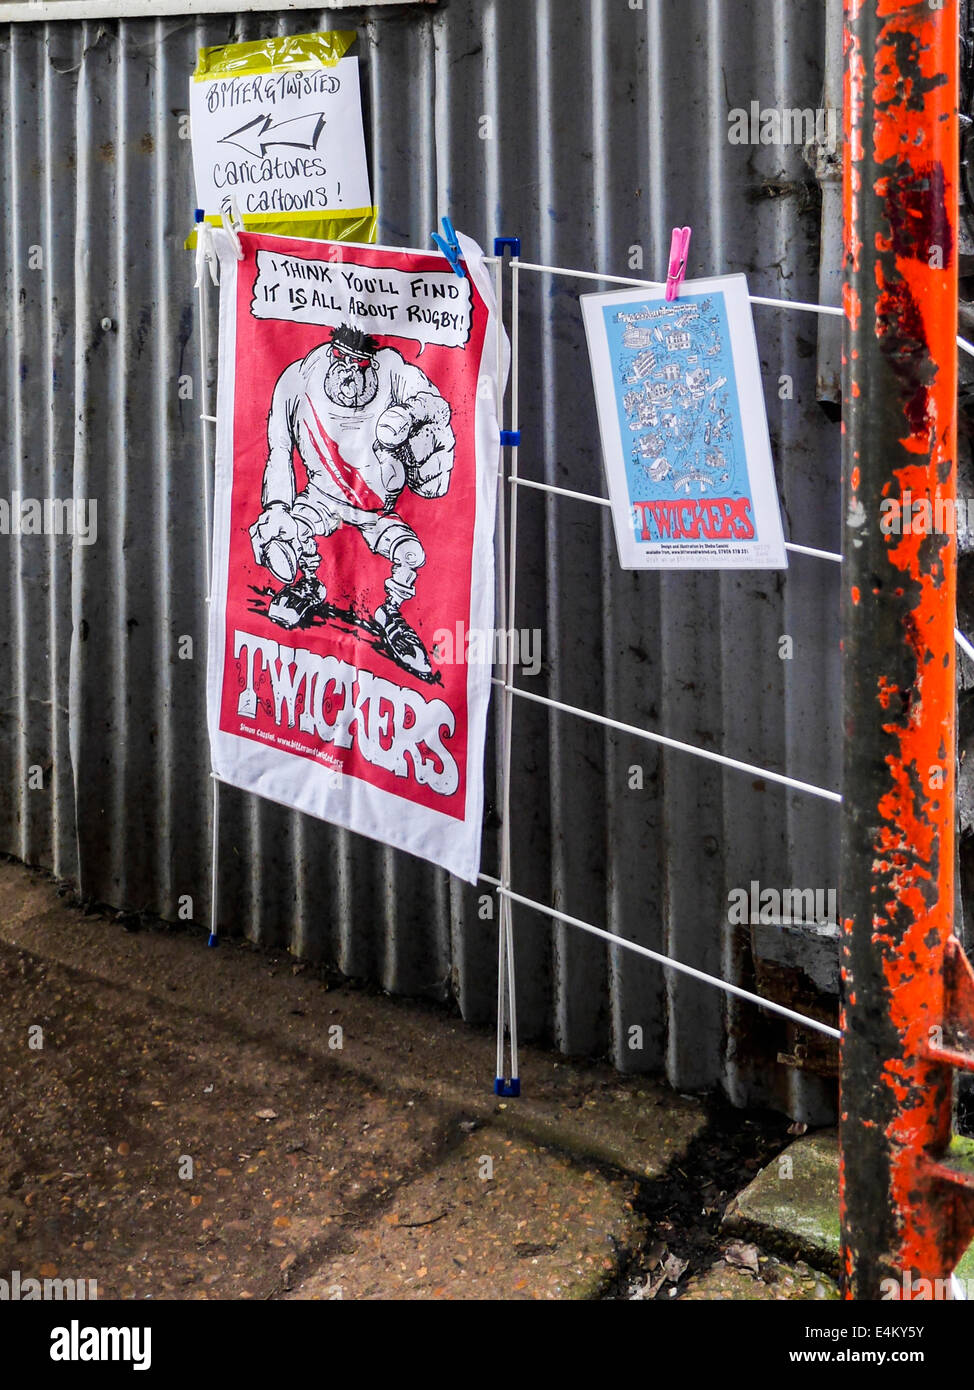 Simon Cassini, caricatures and cartoons,  Bitter and twisted Twickers posters on Eel Pie Island, Twickenham, London, - Stock Image